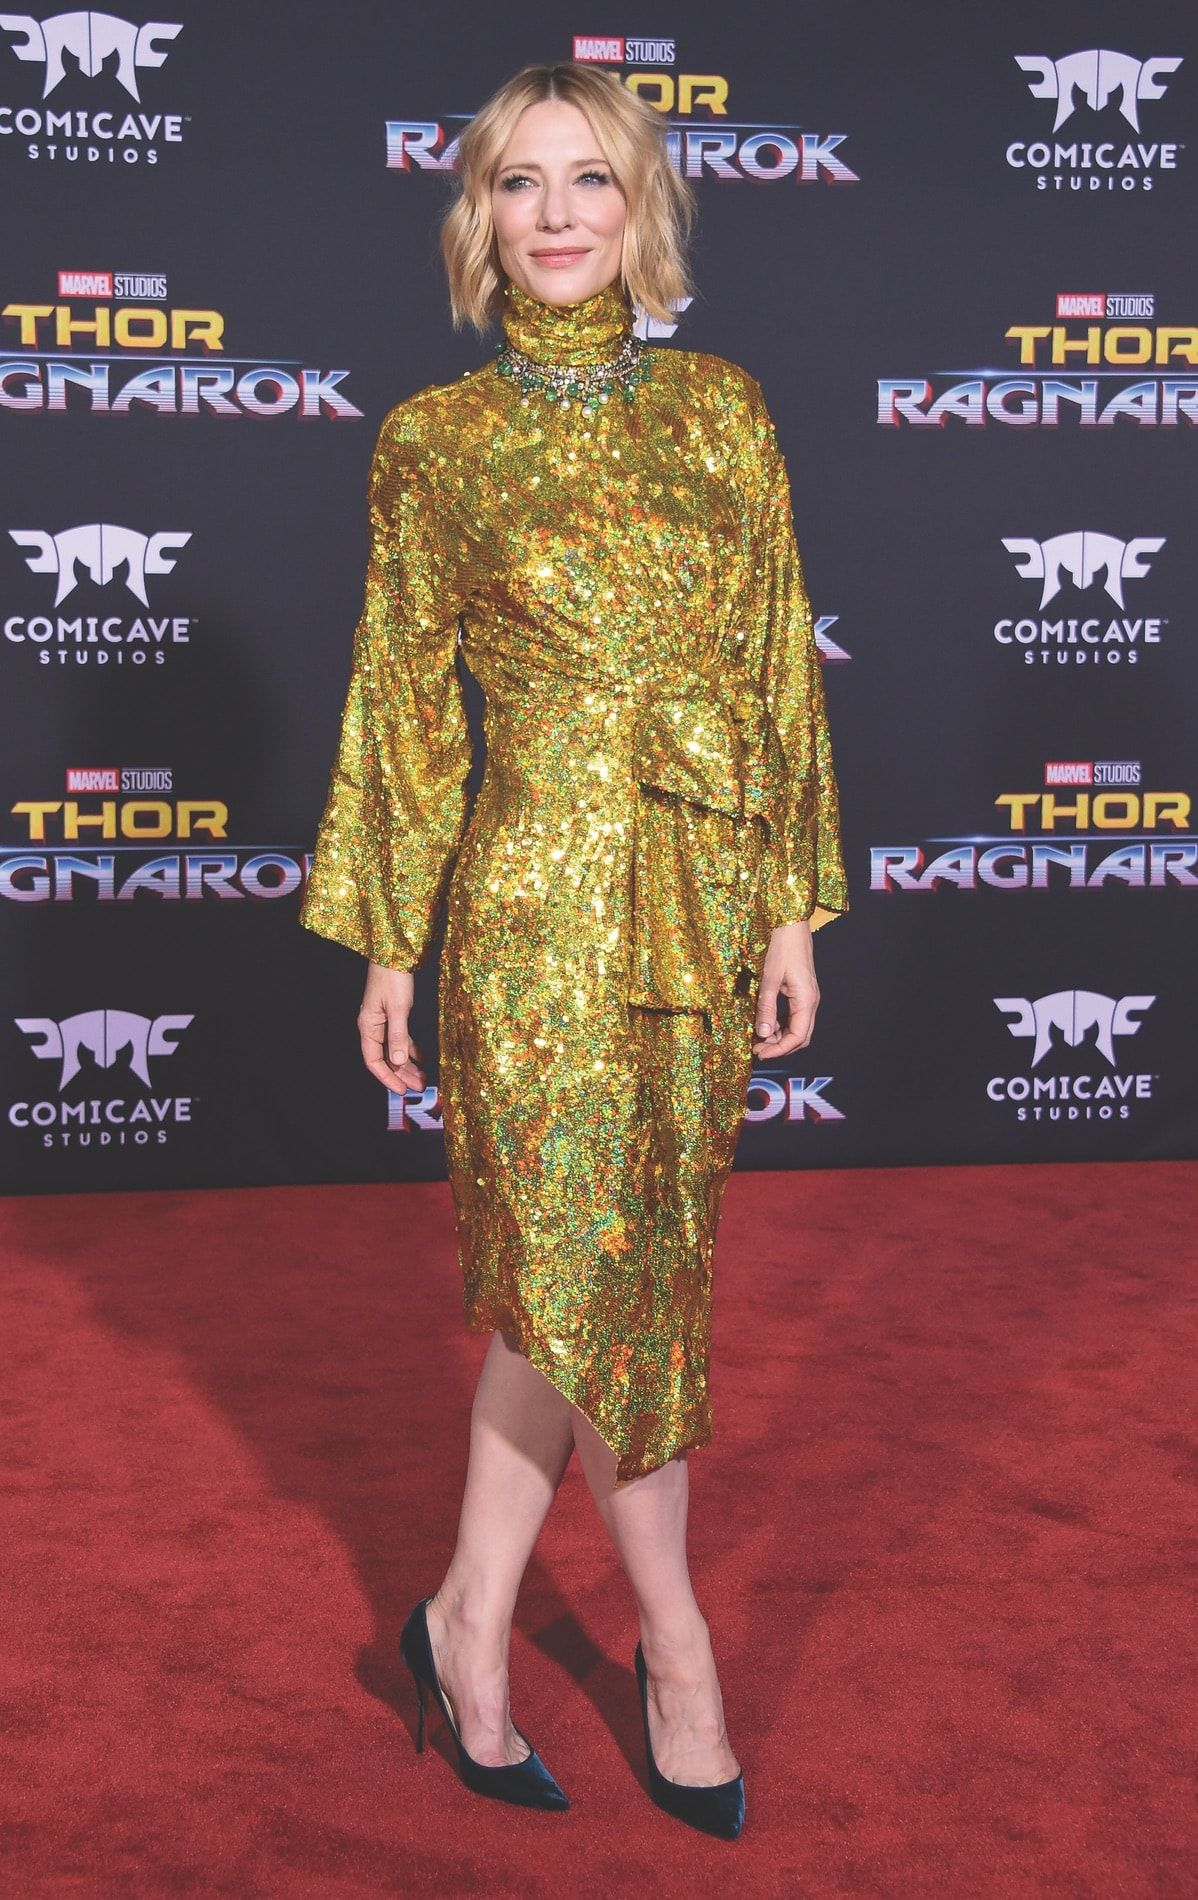 Cate Blanchett on the red carpet at the Thor Ragnarok